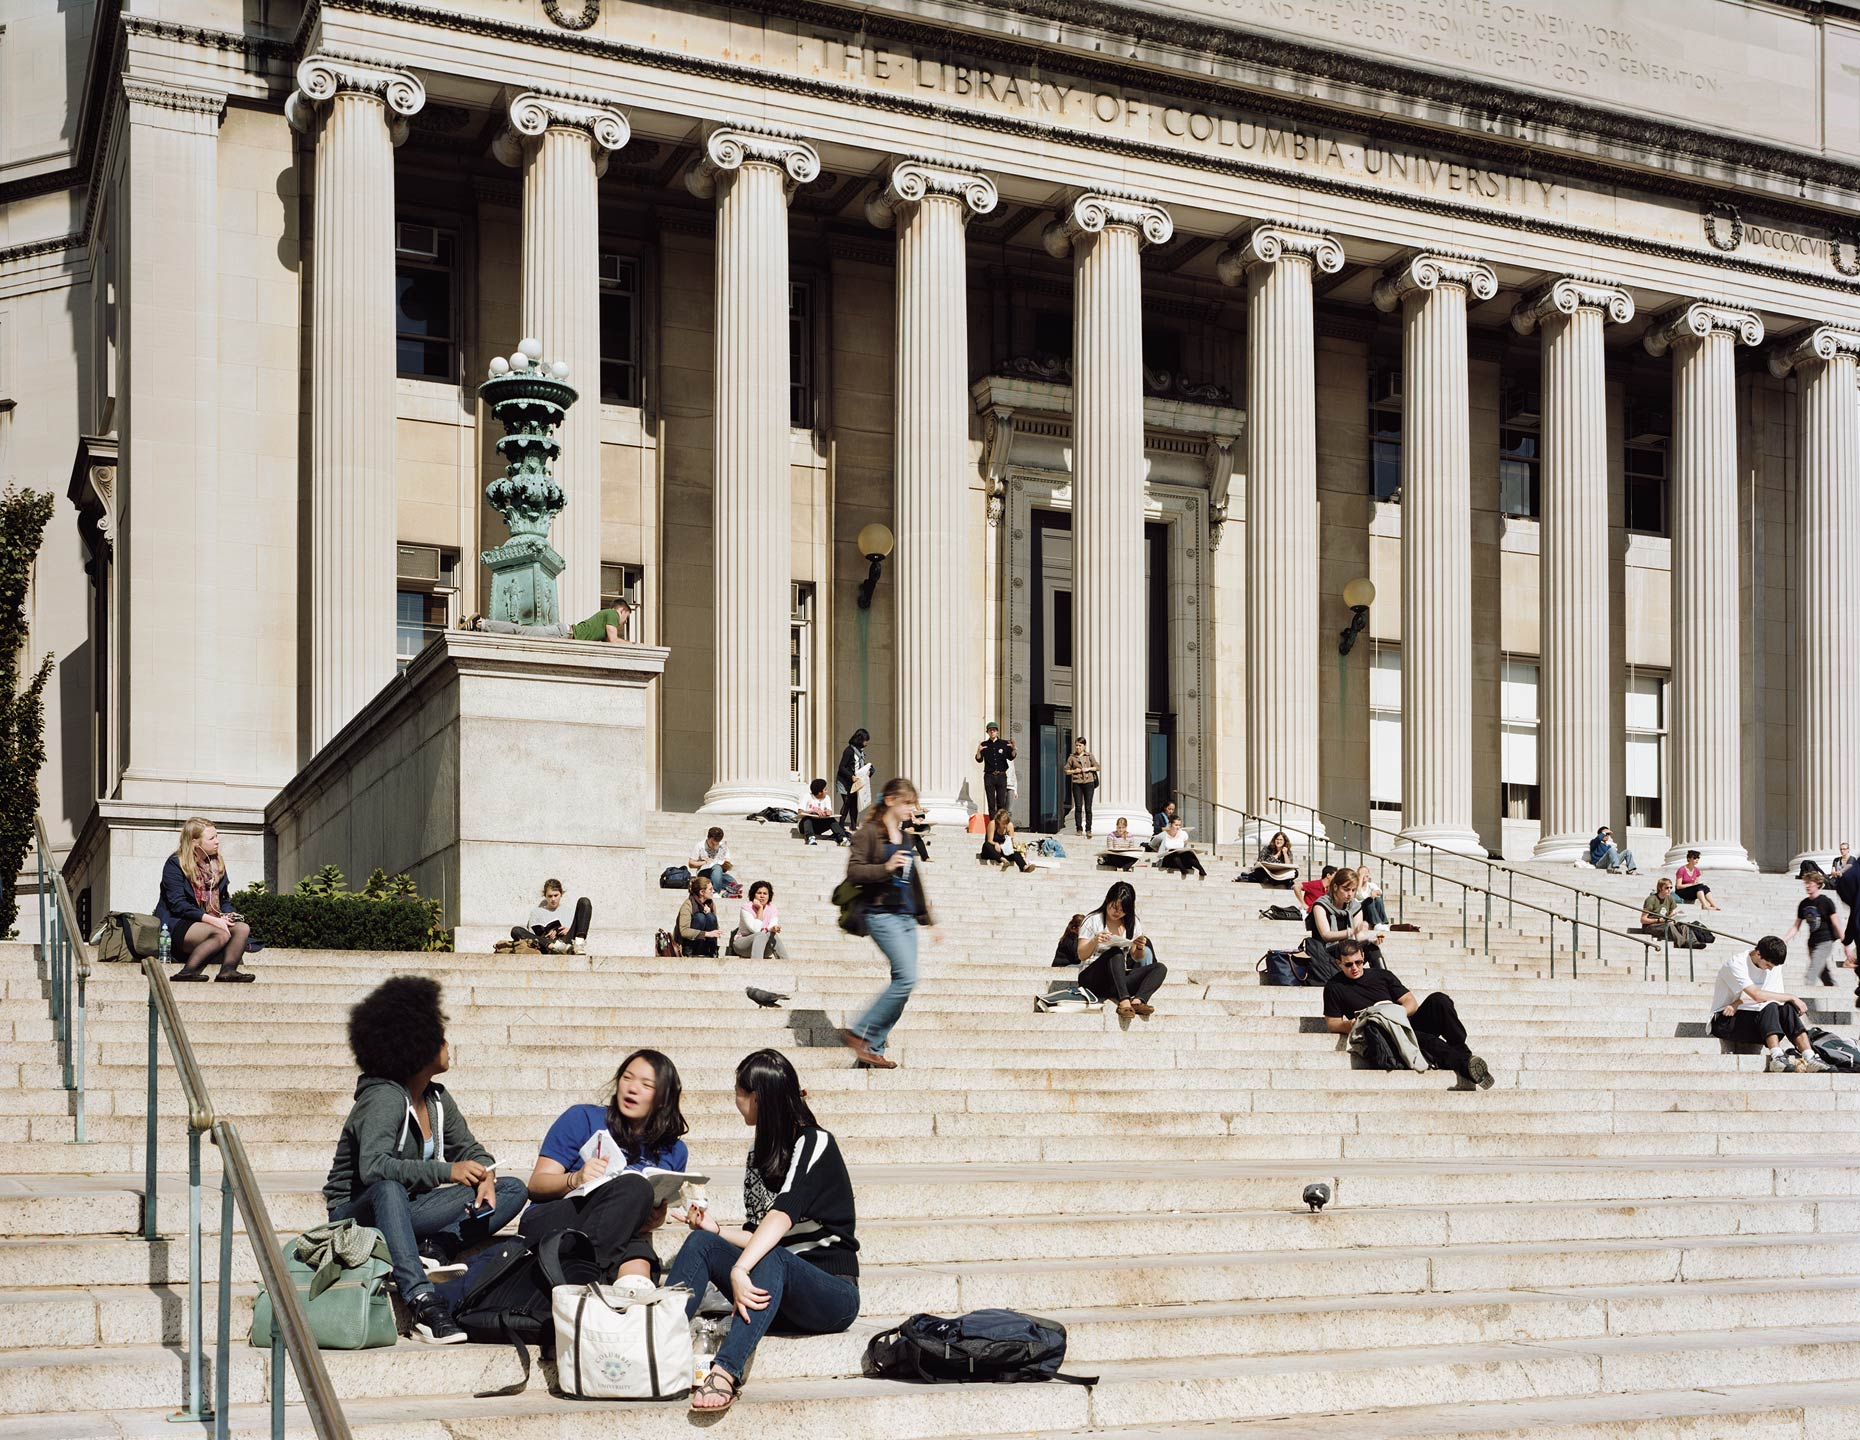 Low Memorial Library, Columbia University, New York, New York